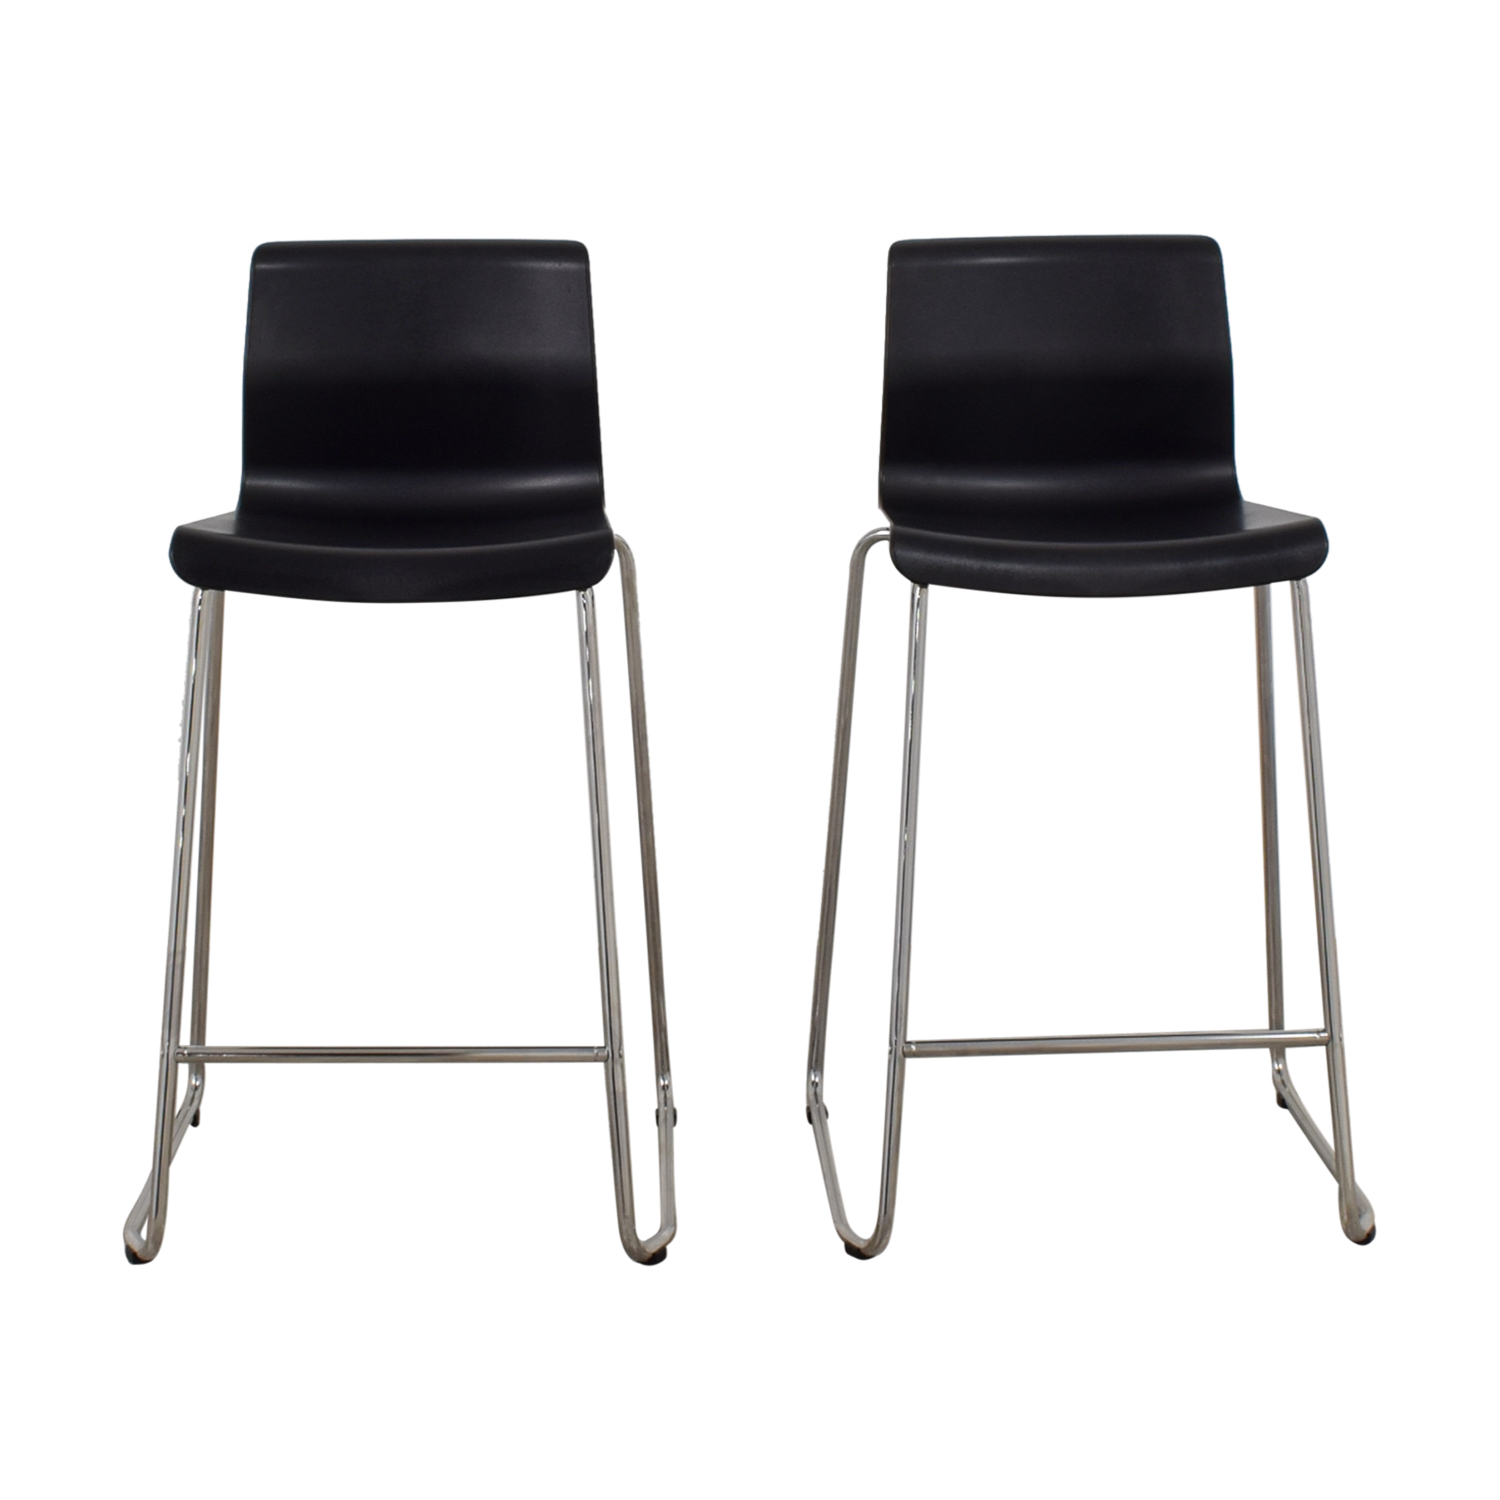 Bar Stools Chairs 81 Off Ikea Ikea Black And Metal Bar Stools Chairs